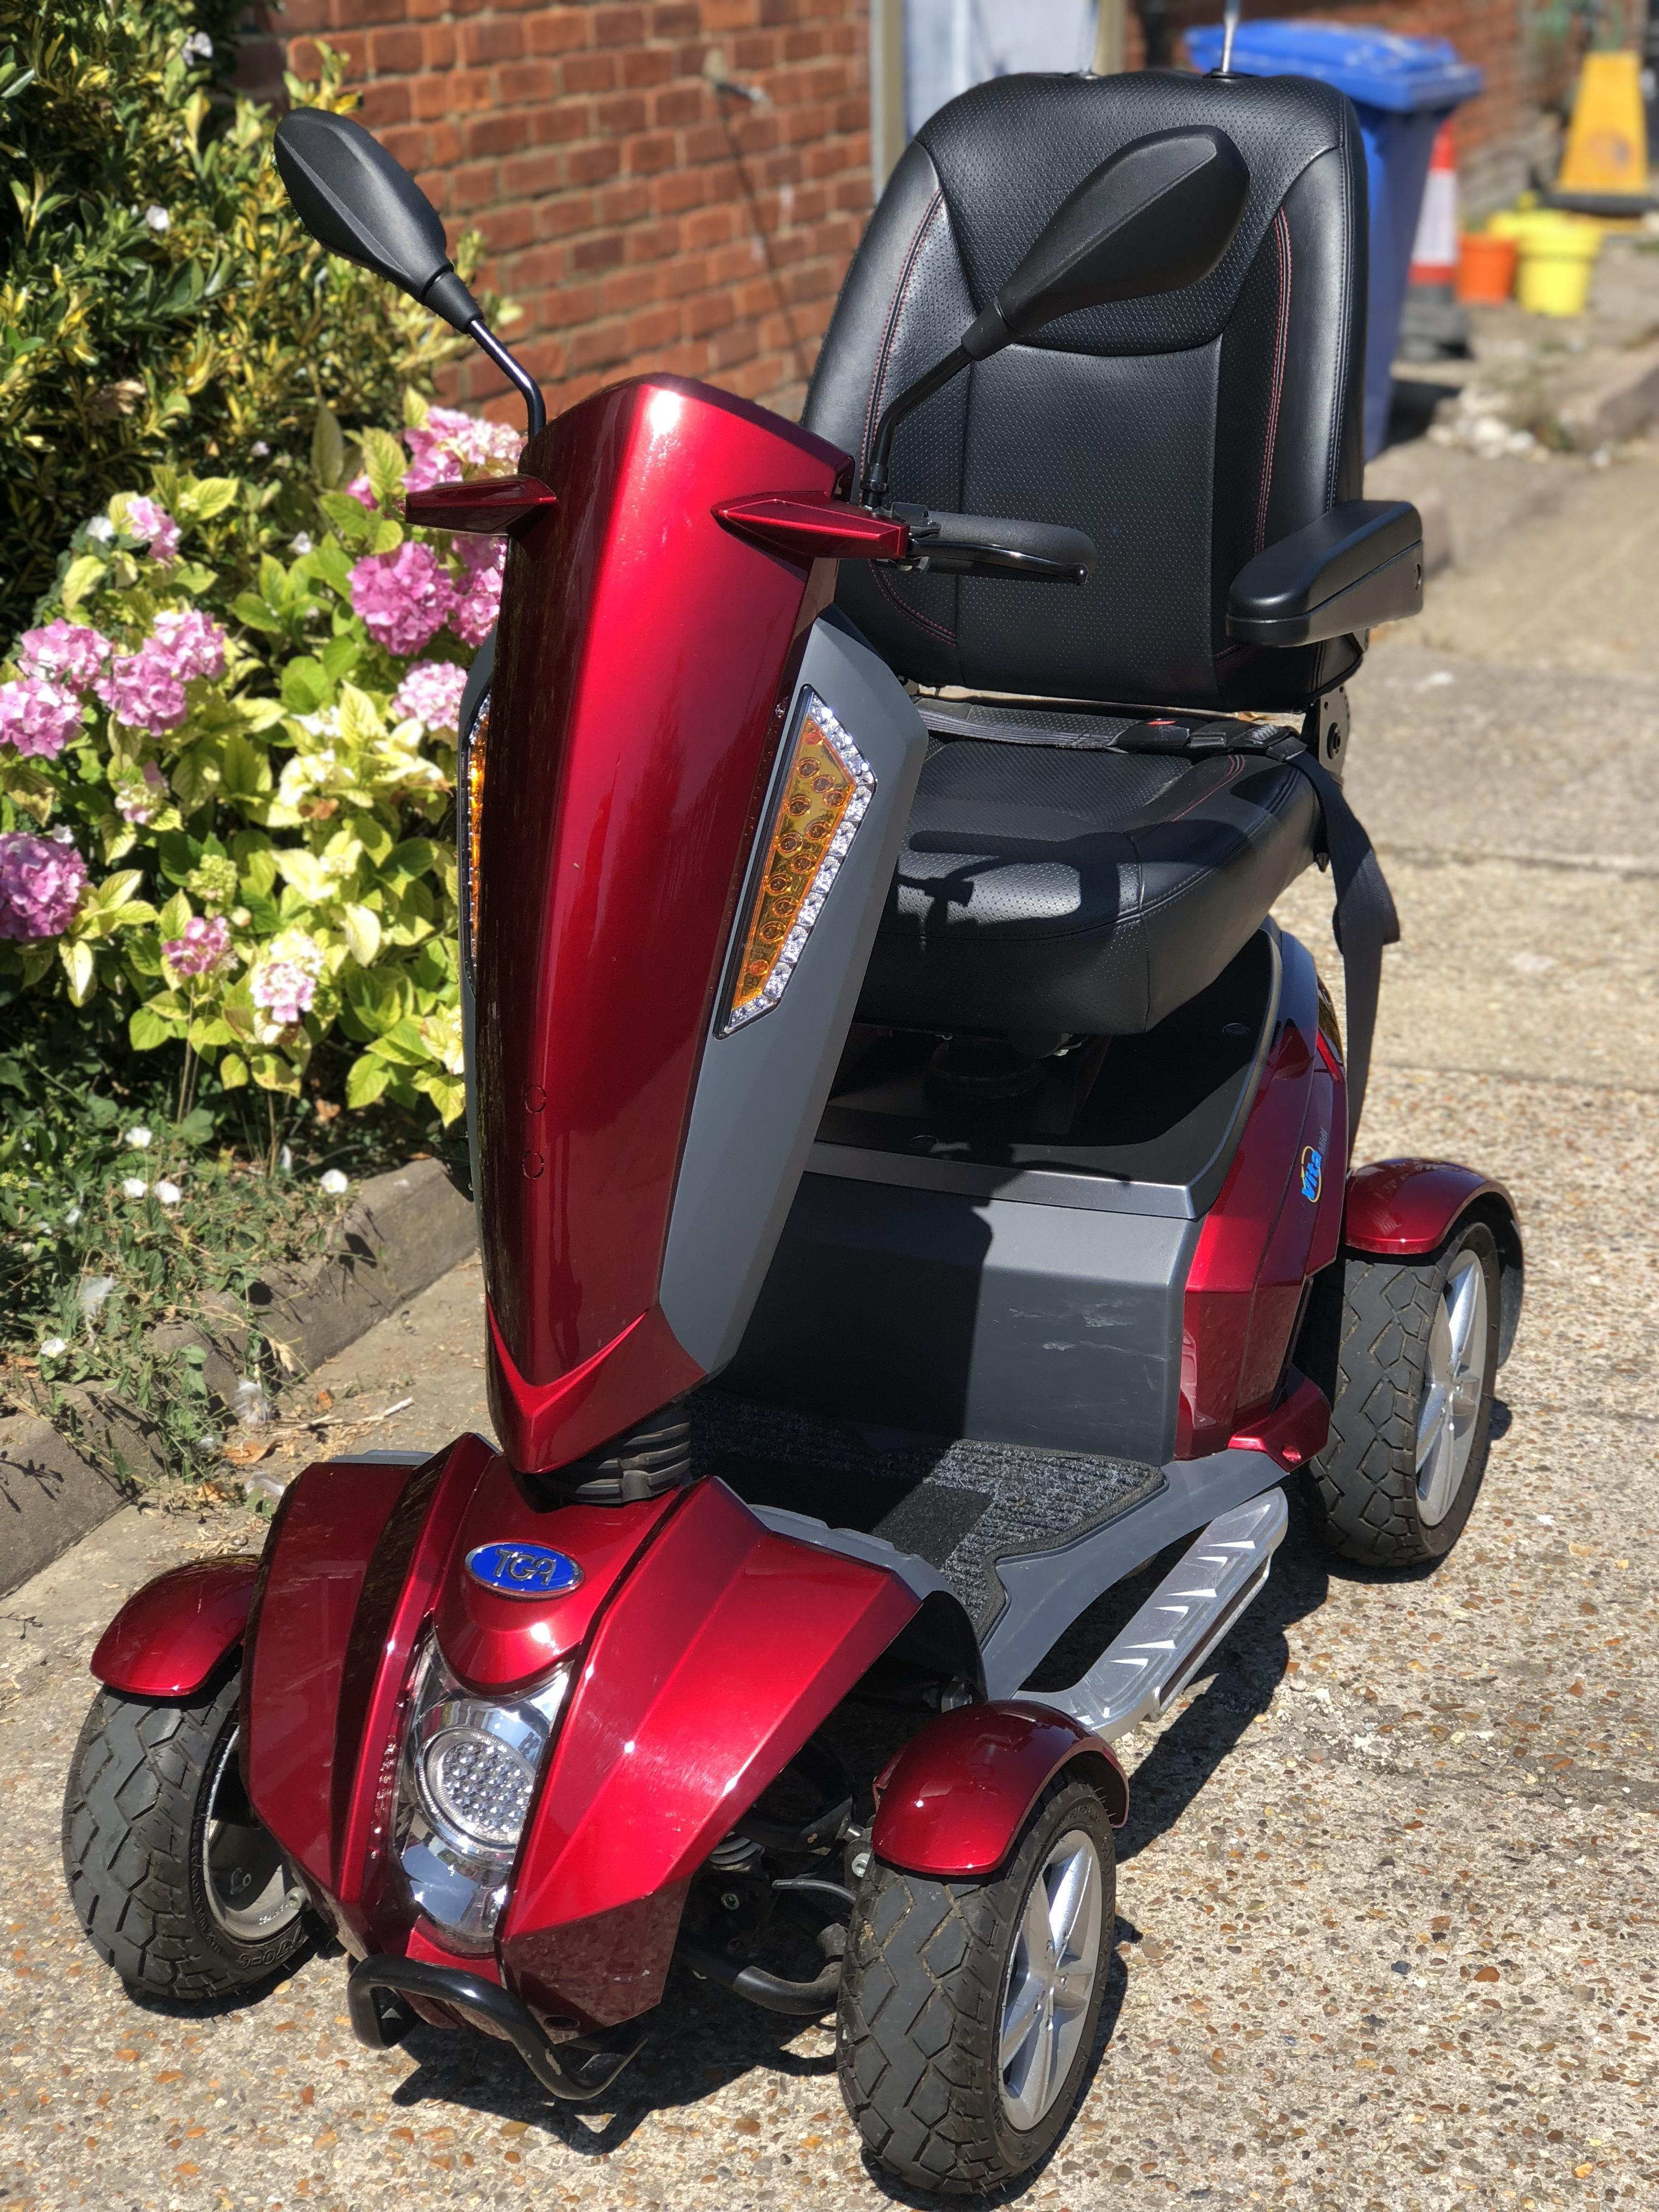 Used mobility scooter - Canterbury service